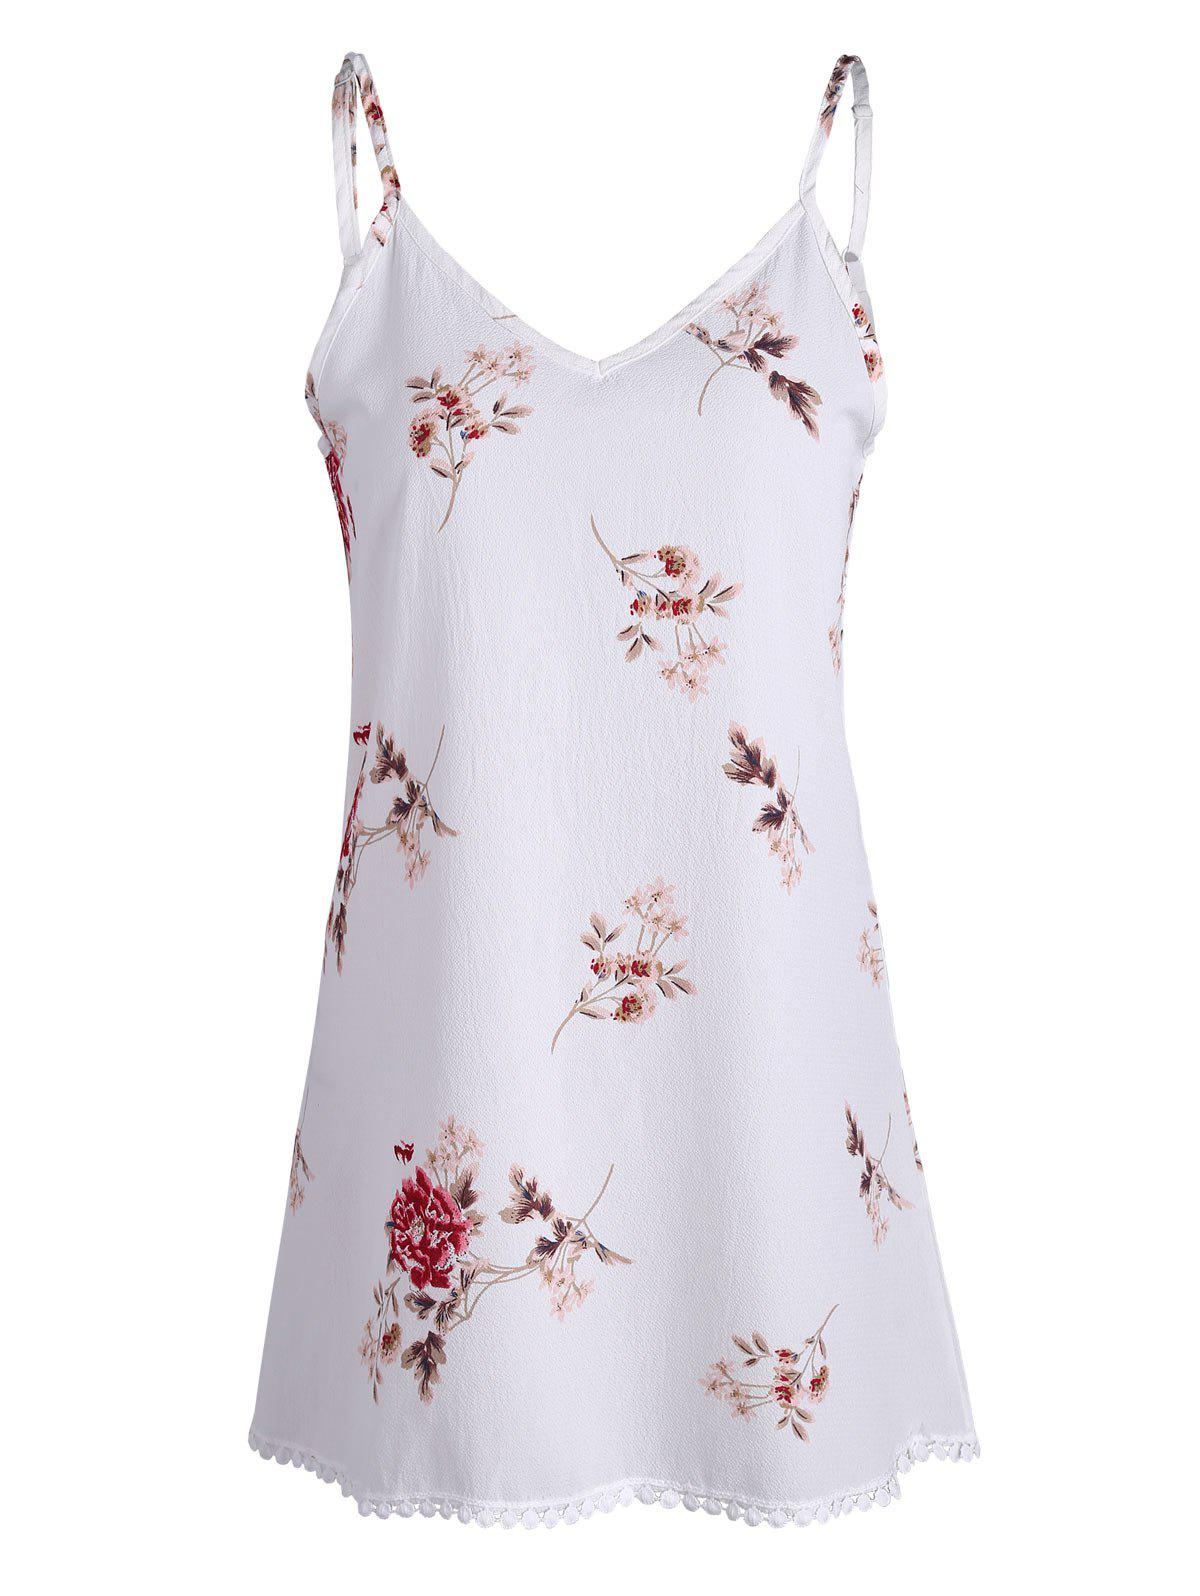 Spaghetti Strap Floral Print Mini Trapeze Dress - WHITE L